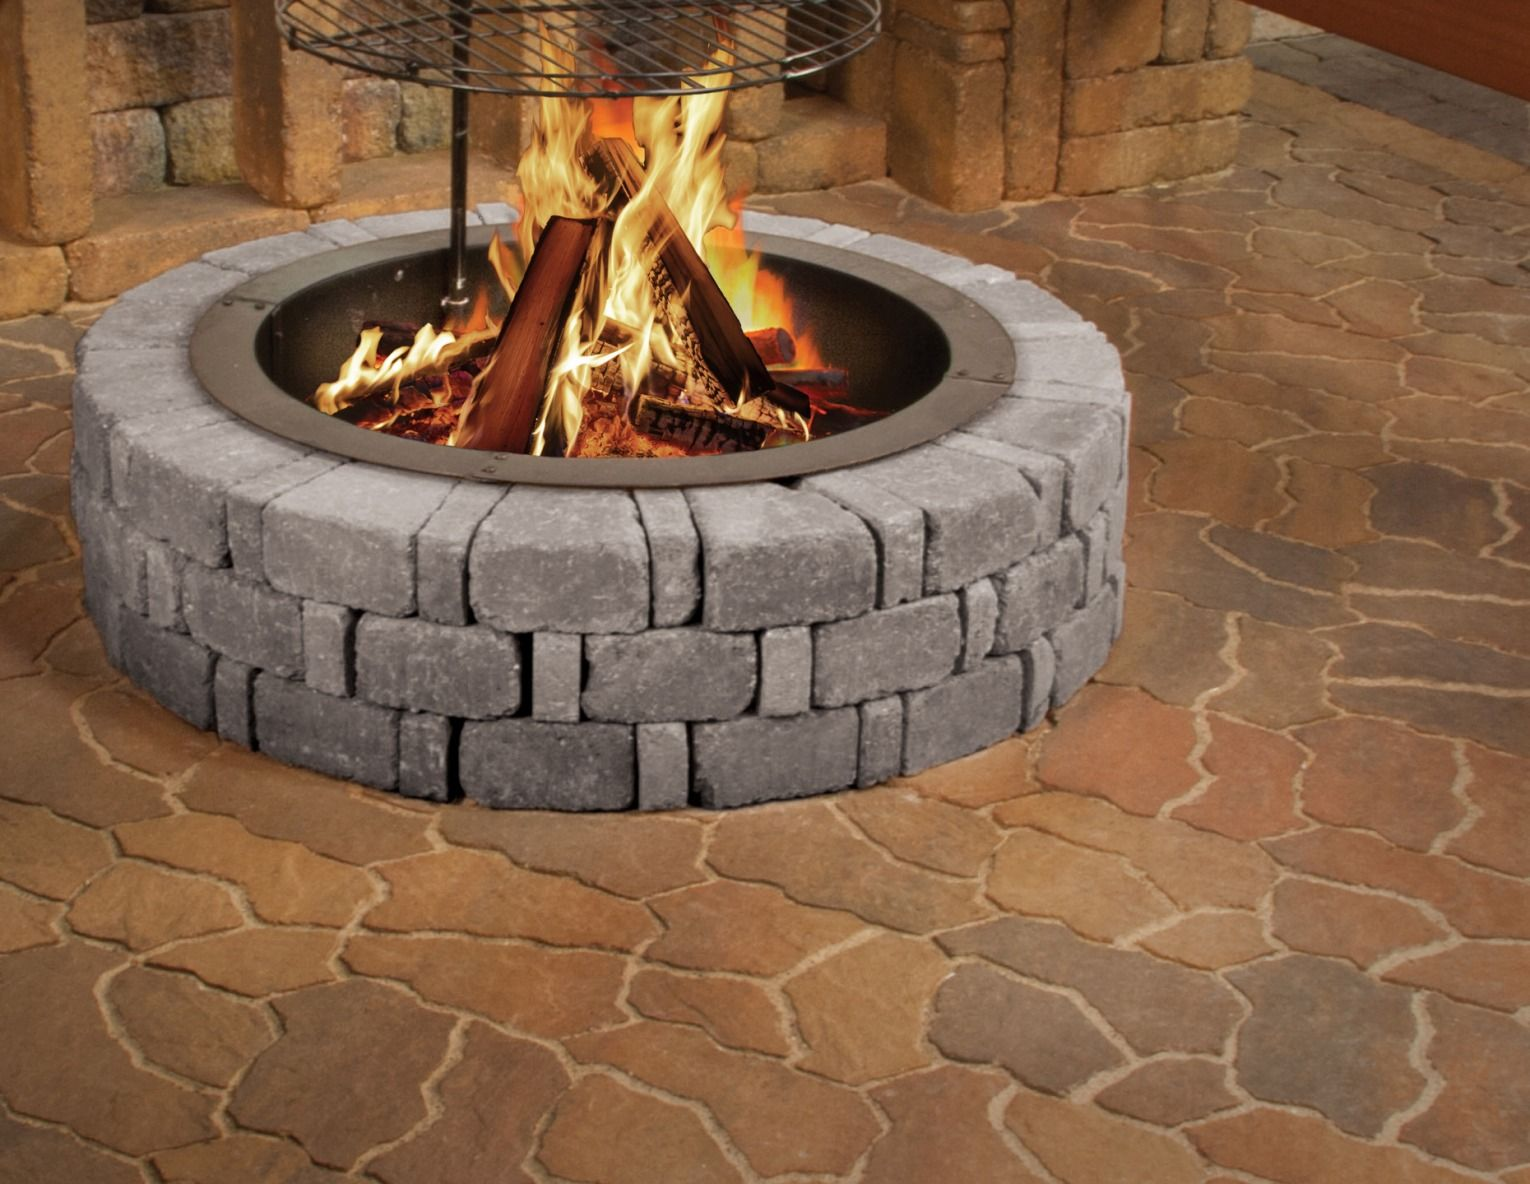 Grill Up Some Good Times With The Albany Fire Ring Comprised Of Belgian Blocks This Sturdy Structure Conjures Up Warm Am Fire Pit Fire Pit Grill Fire Pit Kit